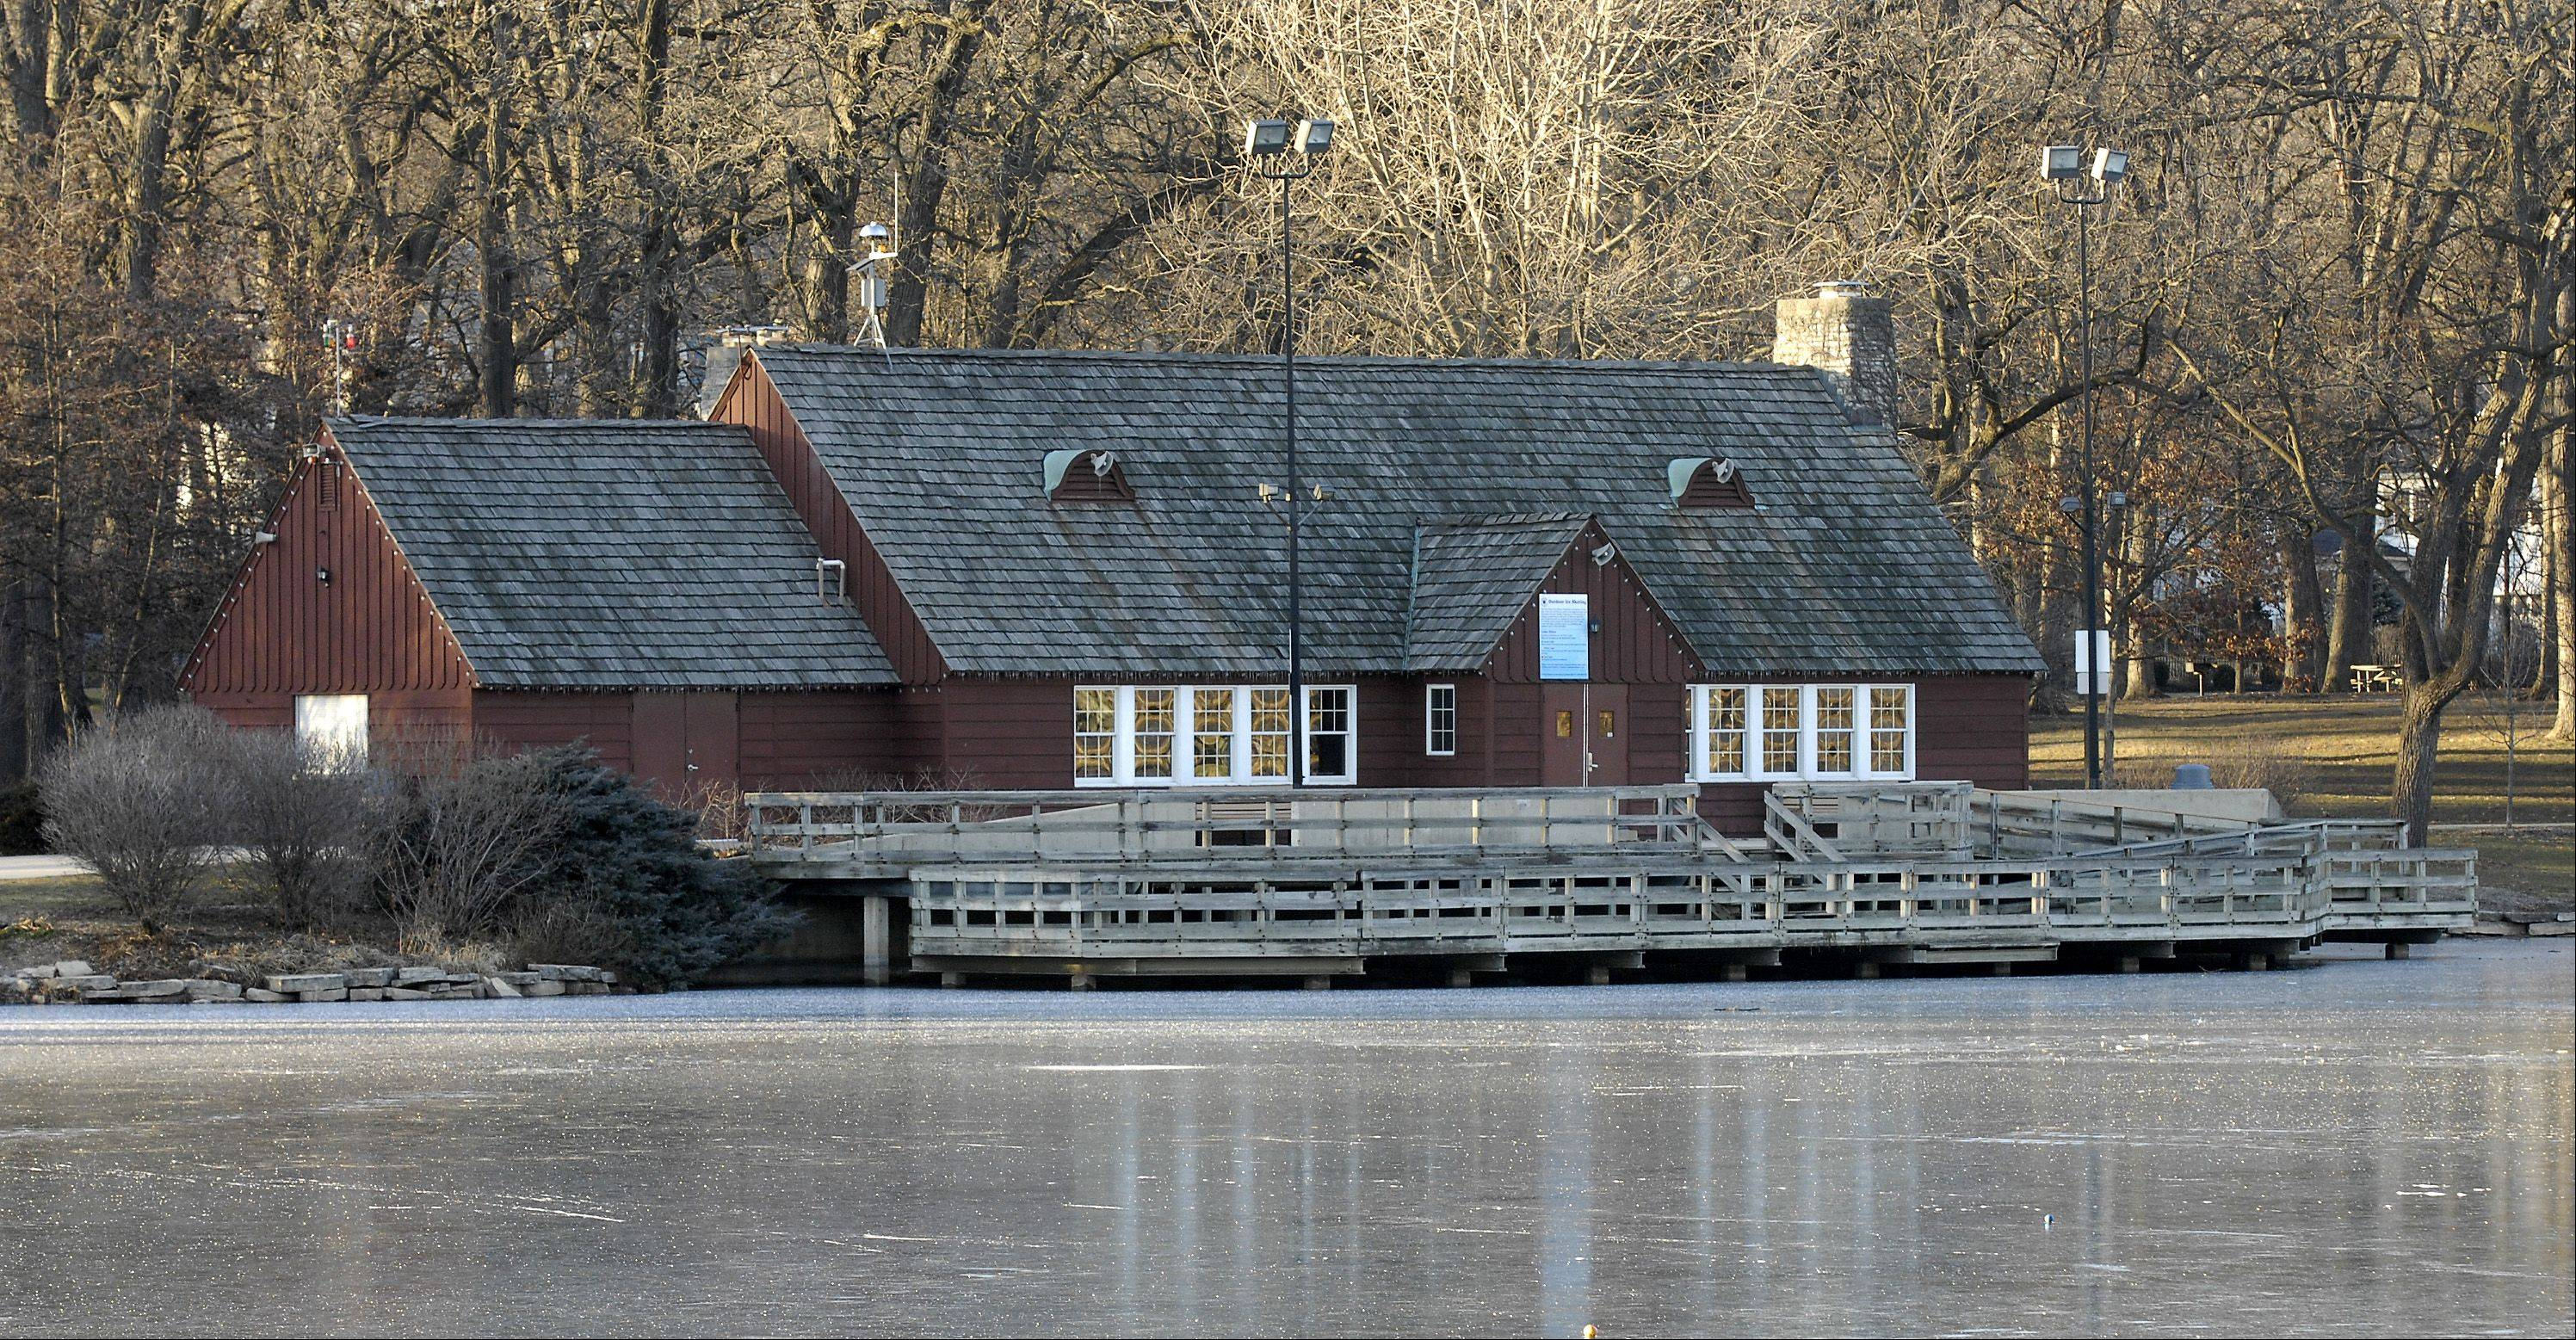 Lake Ellyn Park in Glen Ellyn has been a community gathering spot and recreation space for more than a century. The park district's master plan for the park recommends several improvements, including renovations to the 75-year-old boathouse that would restore its historical features.